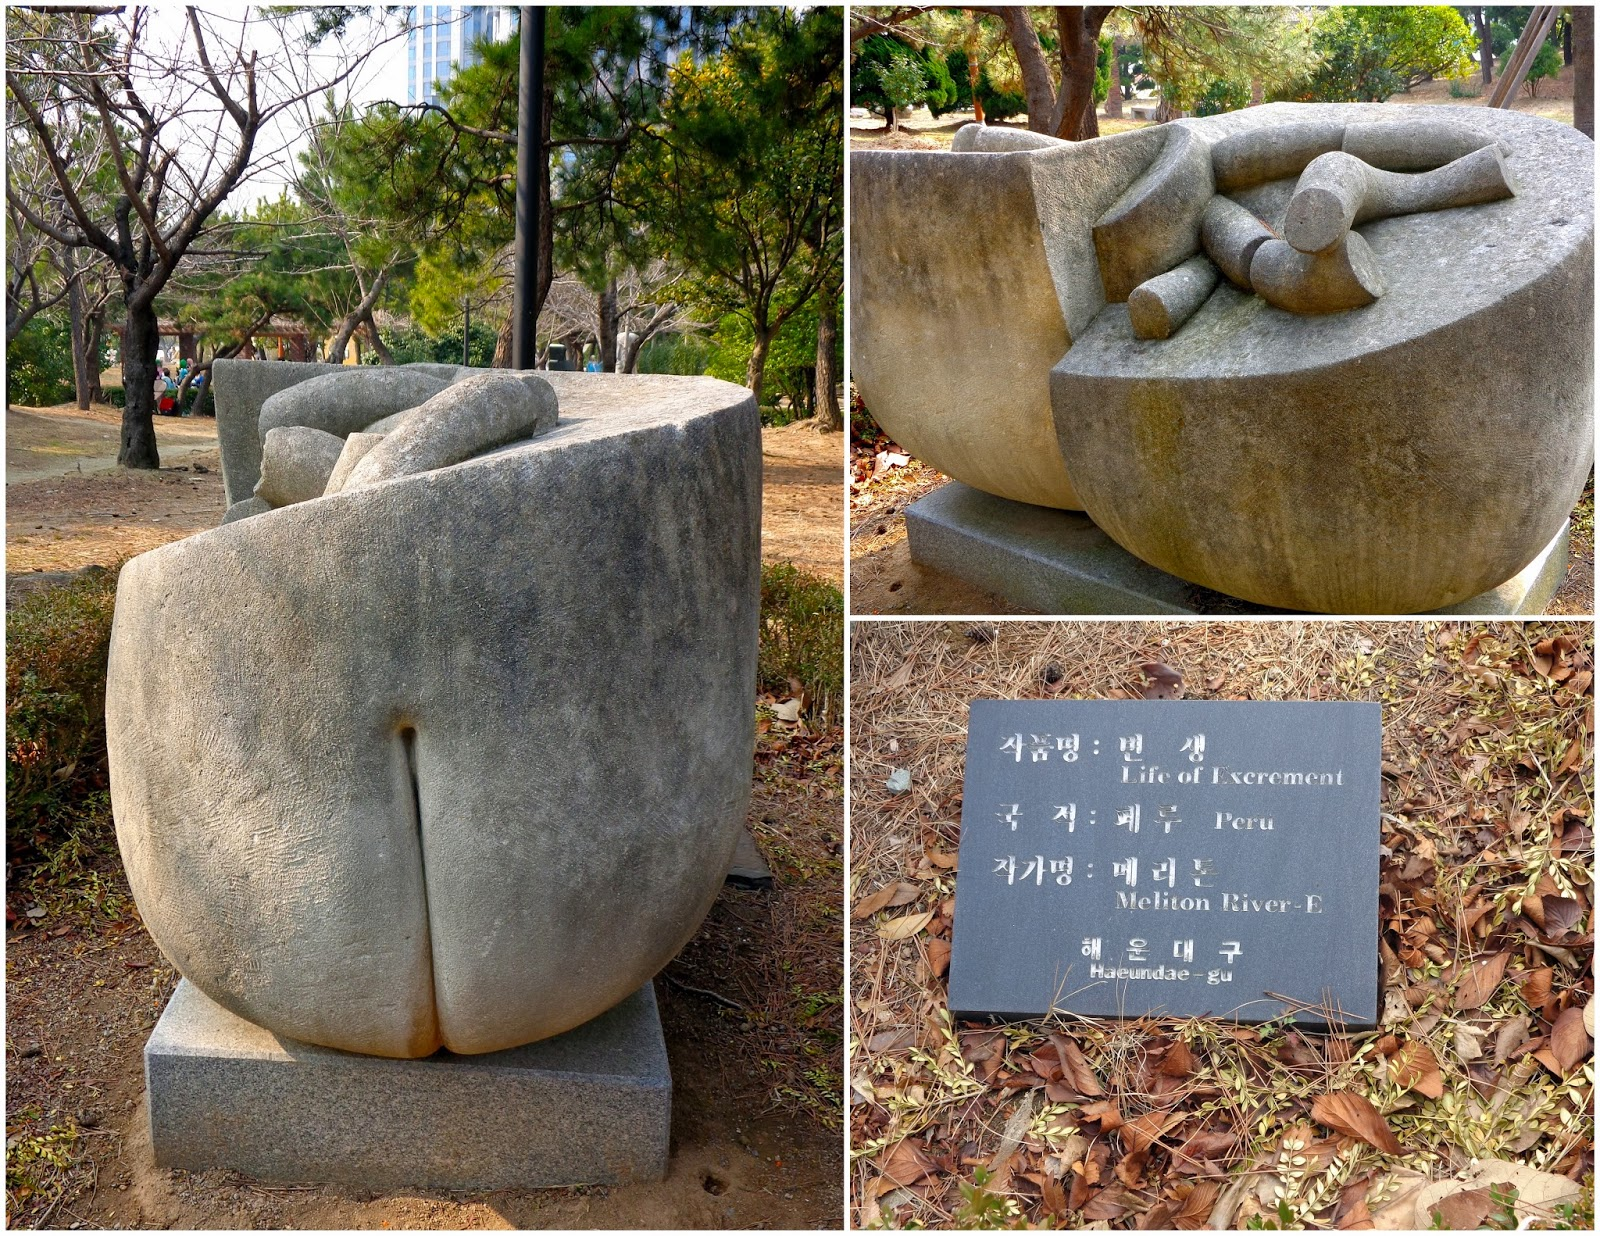 Life of Excrement, sculpture in Olympic Park, Busan